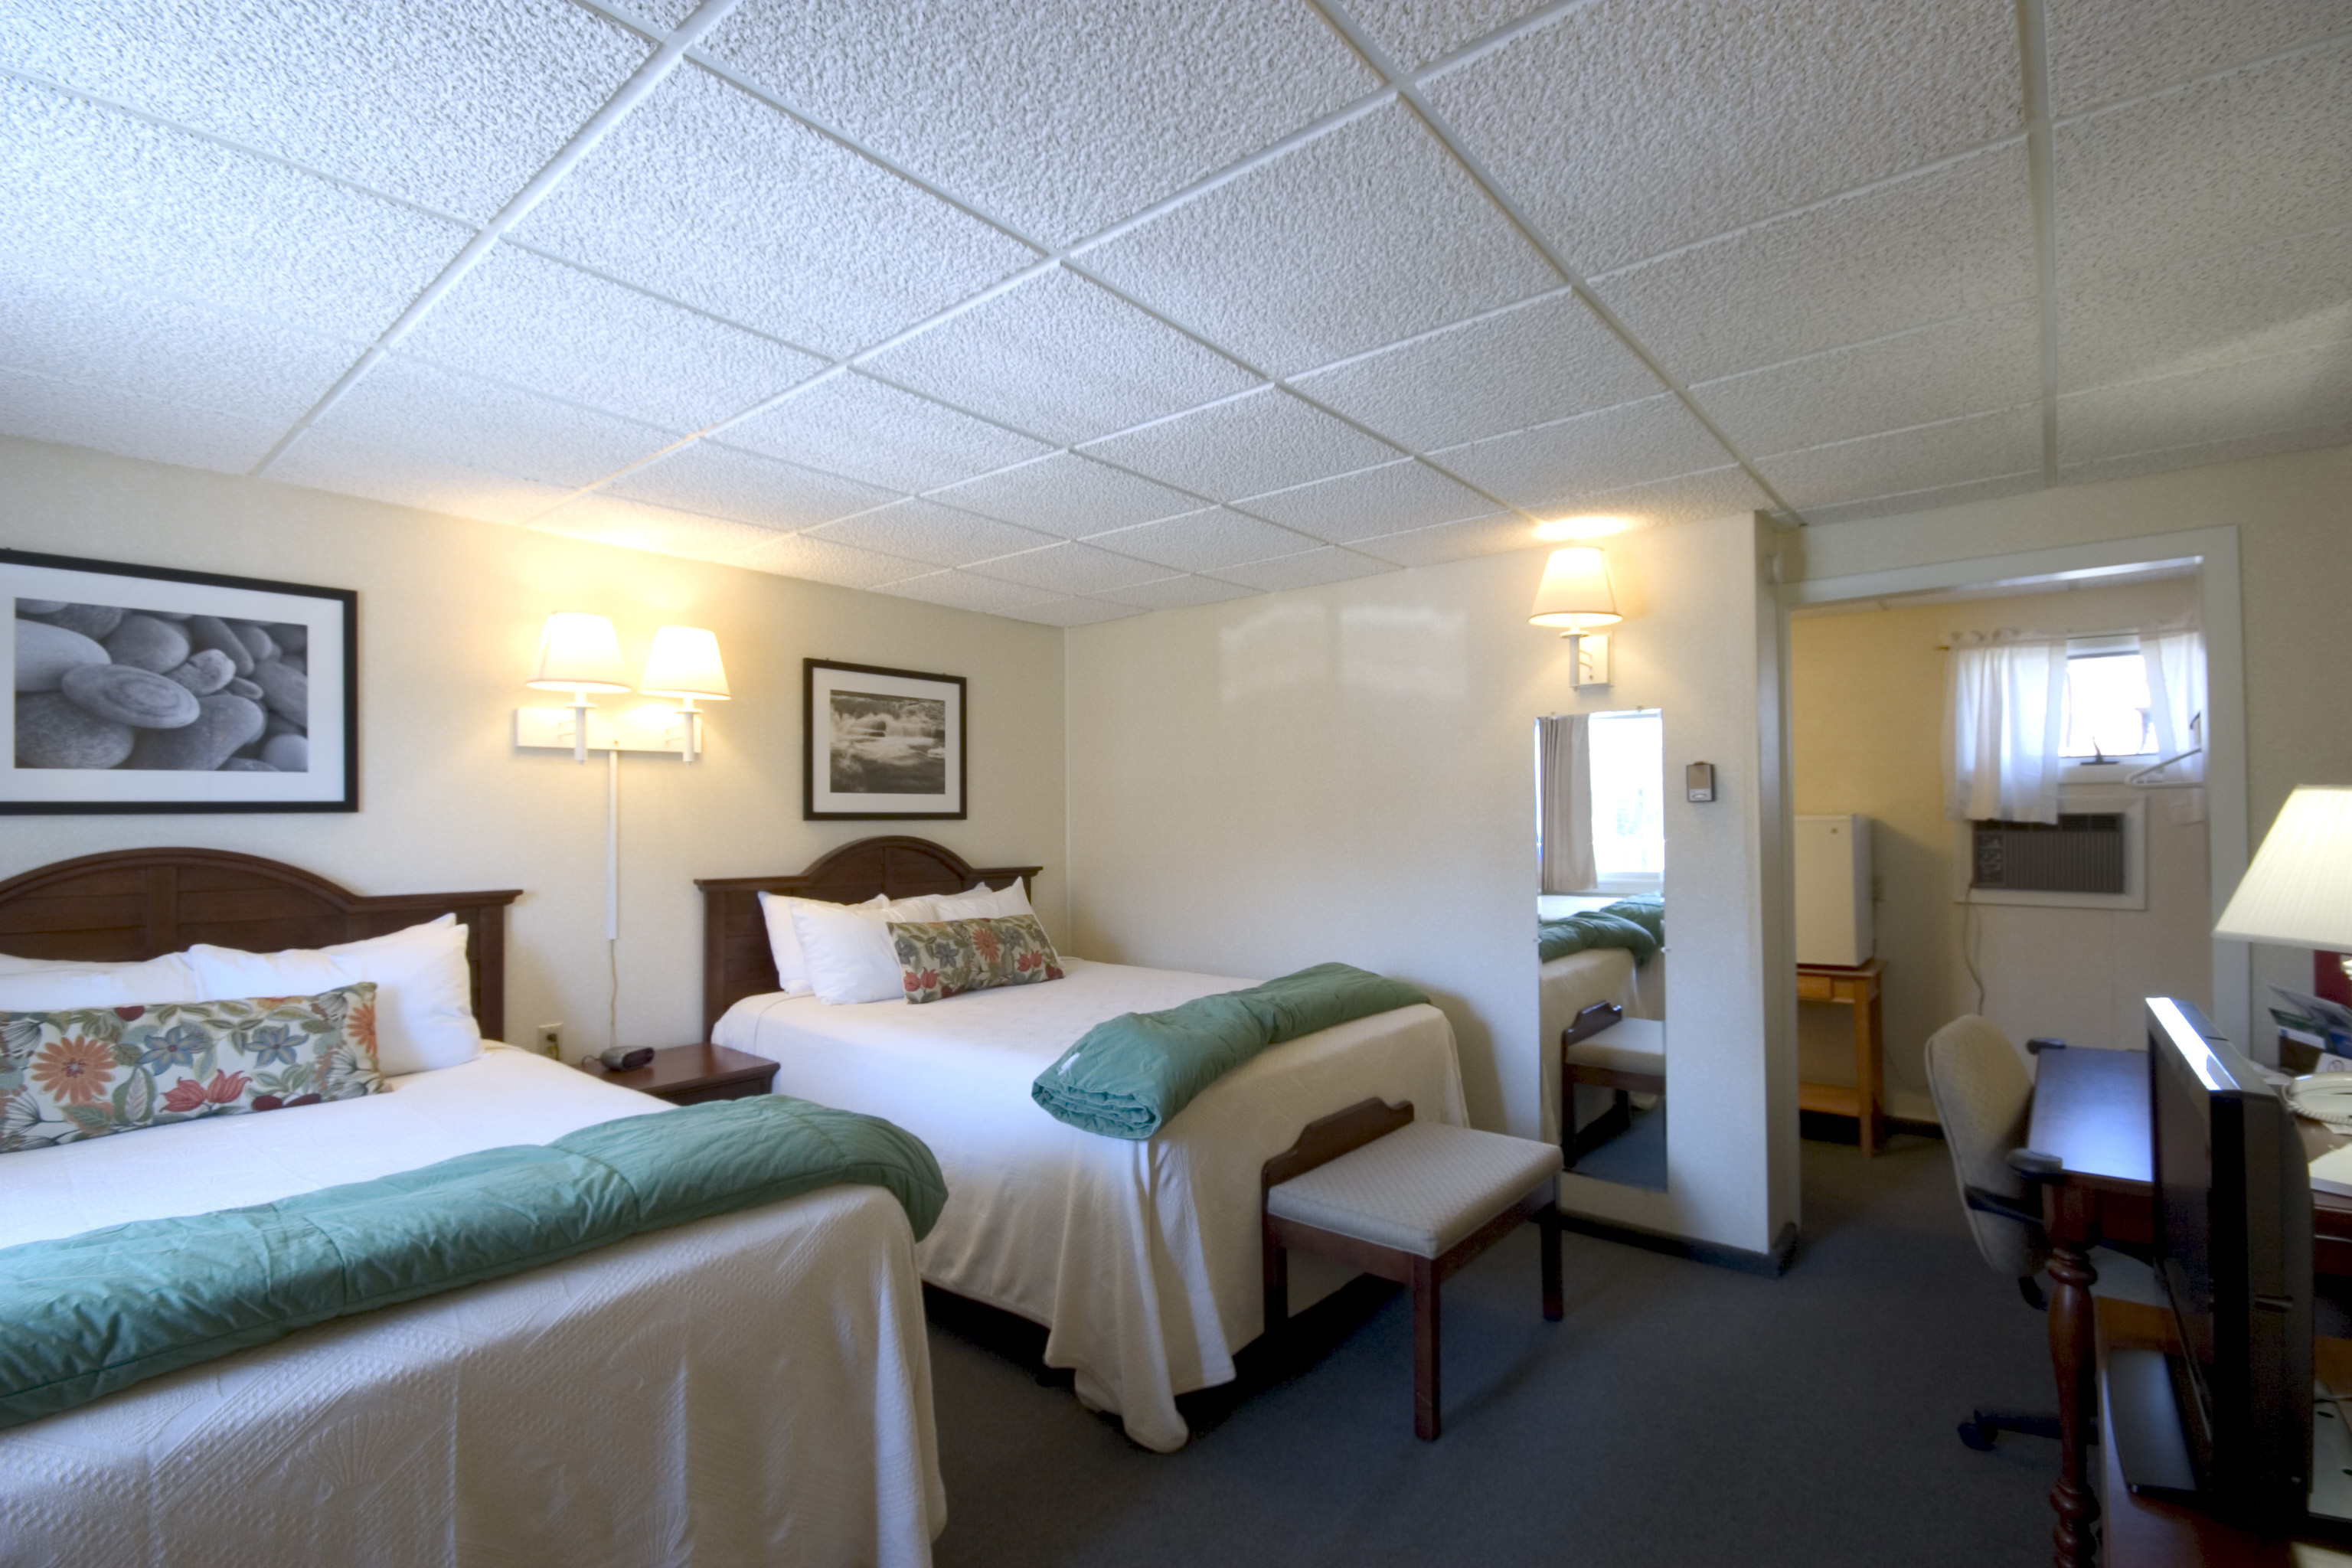 Town Motel - Rooms 3,4,7,8